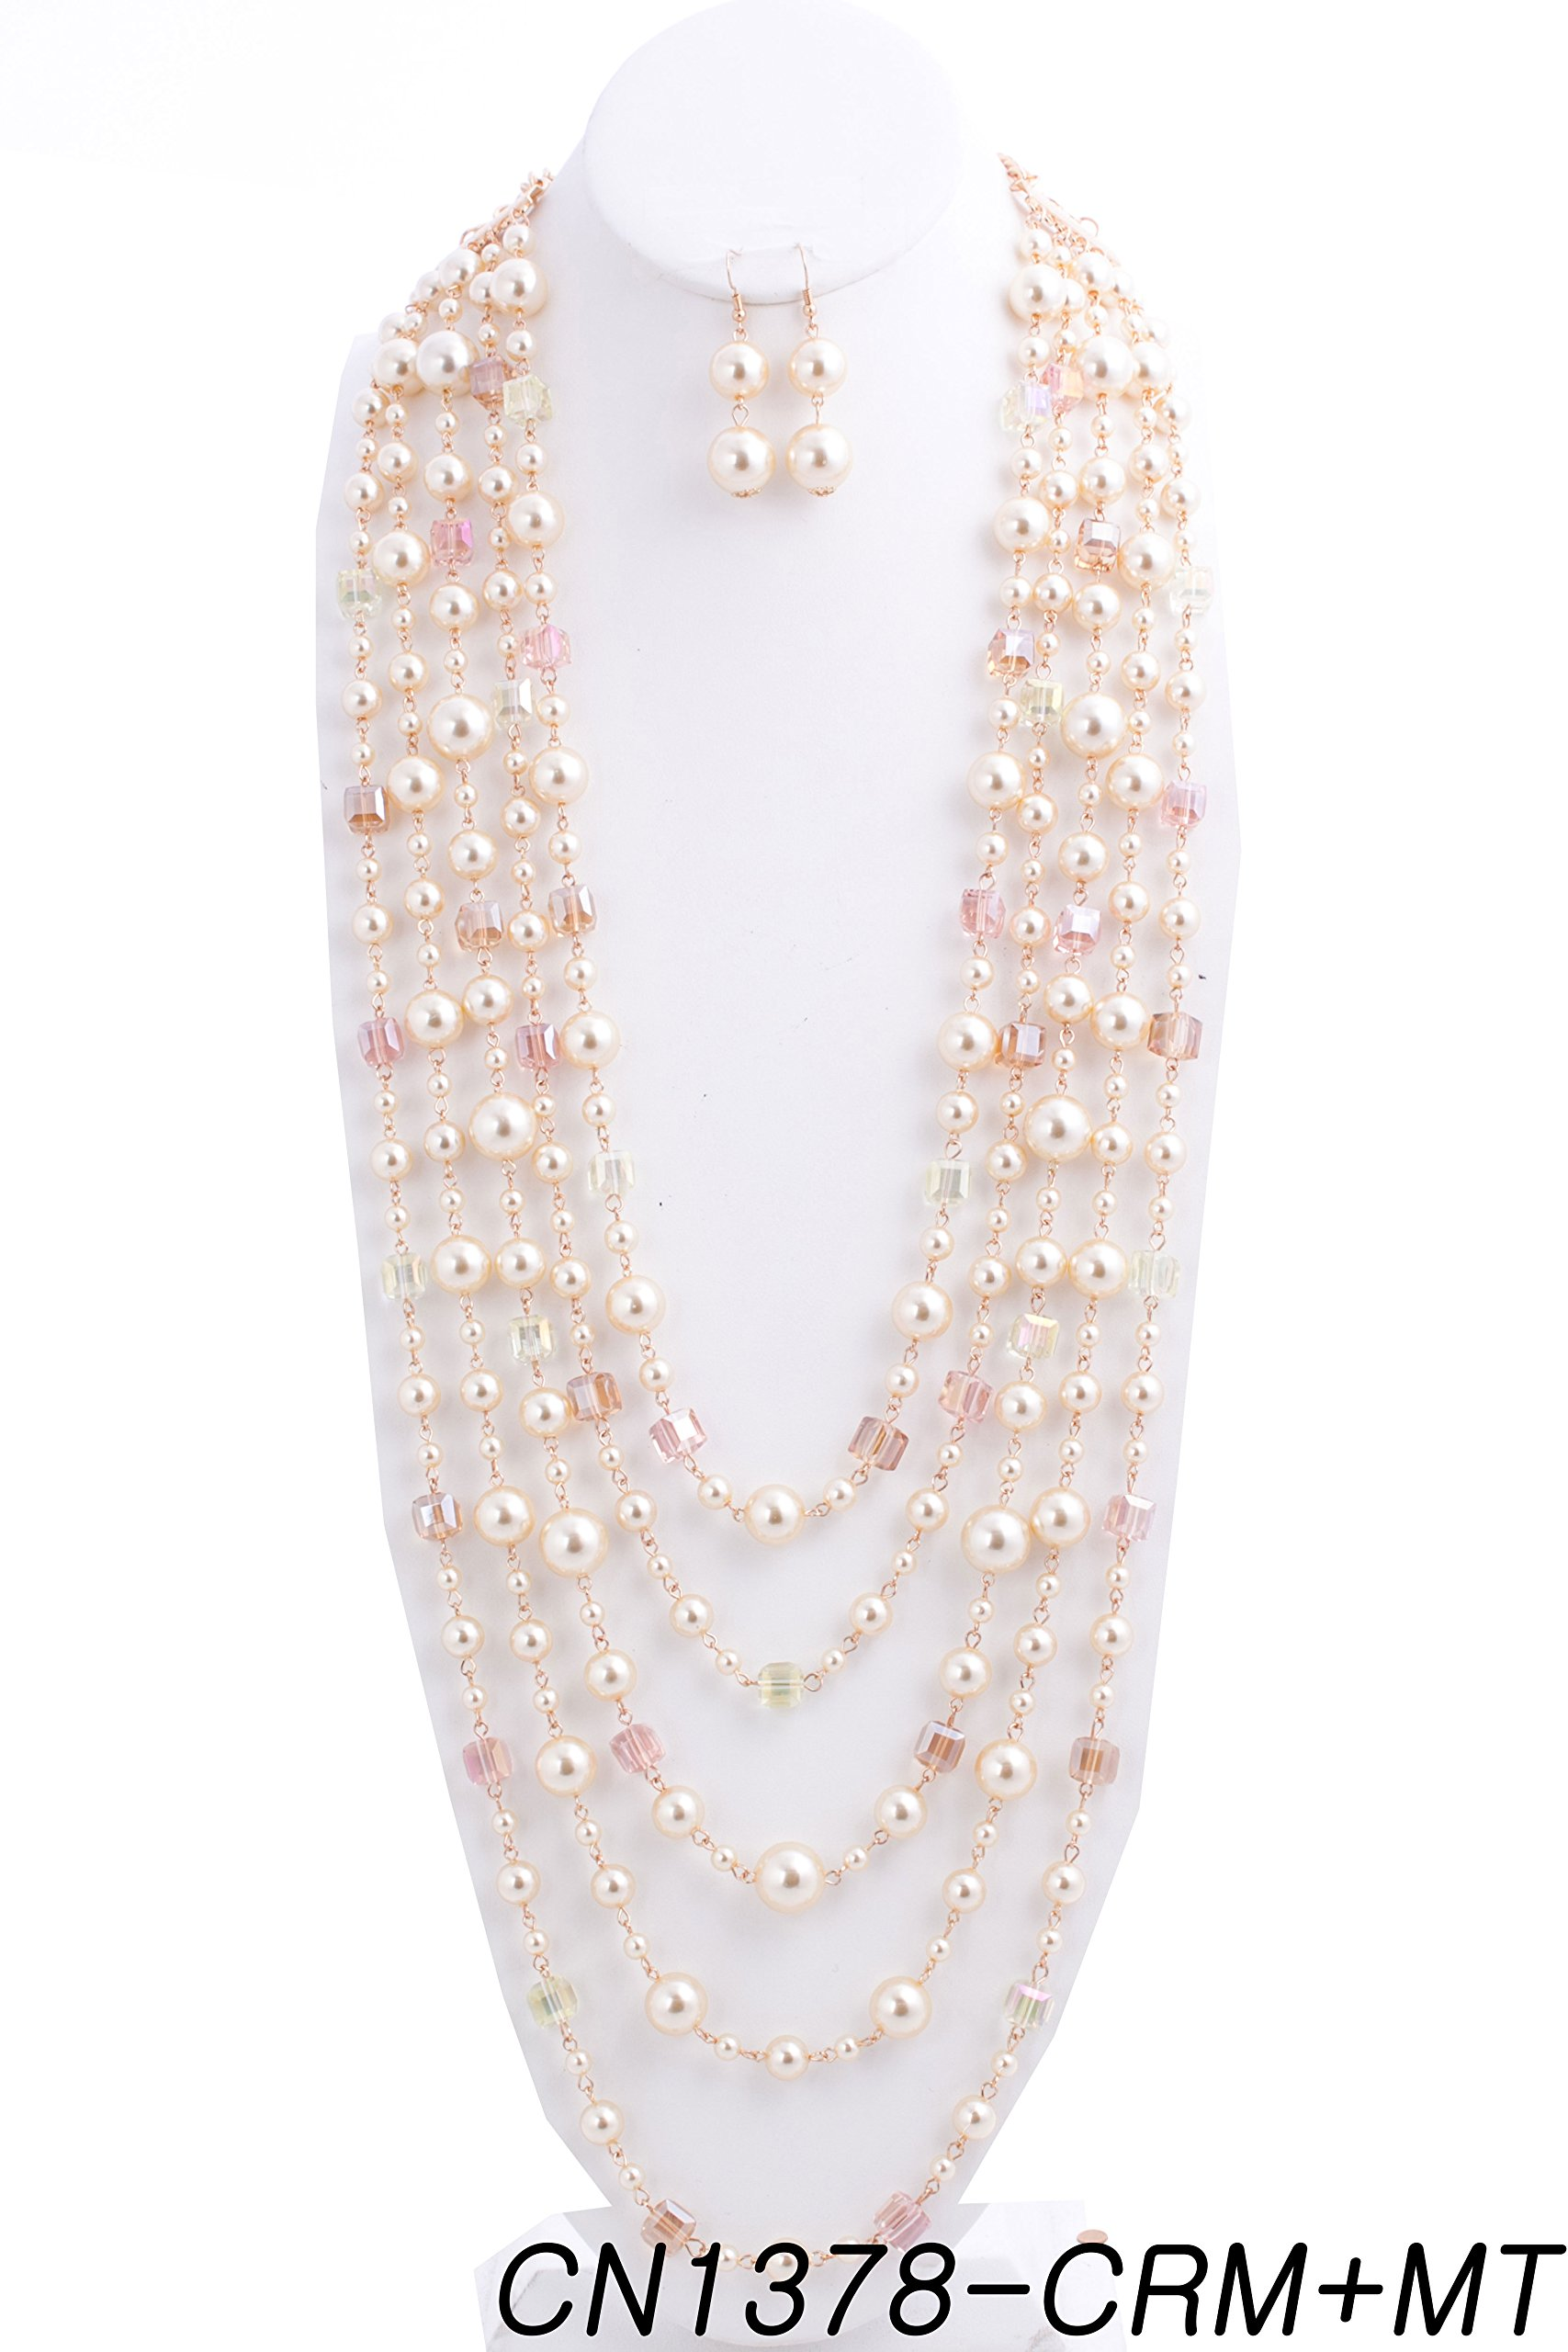 {CN1378 StyleNo1} WOMEN'S FASHIONABLE PEARL N CRYSTAL MULTI-LAYERED NECKLACE AND EARRINGS SET - Designed In USA (CREAM MULTI)